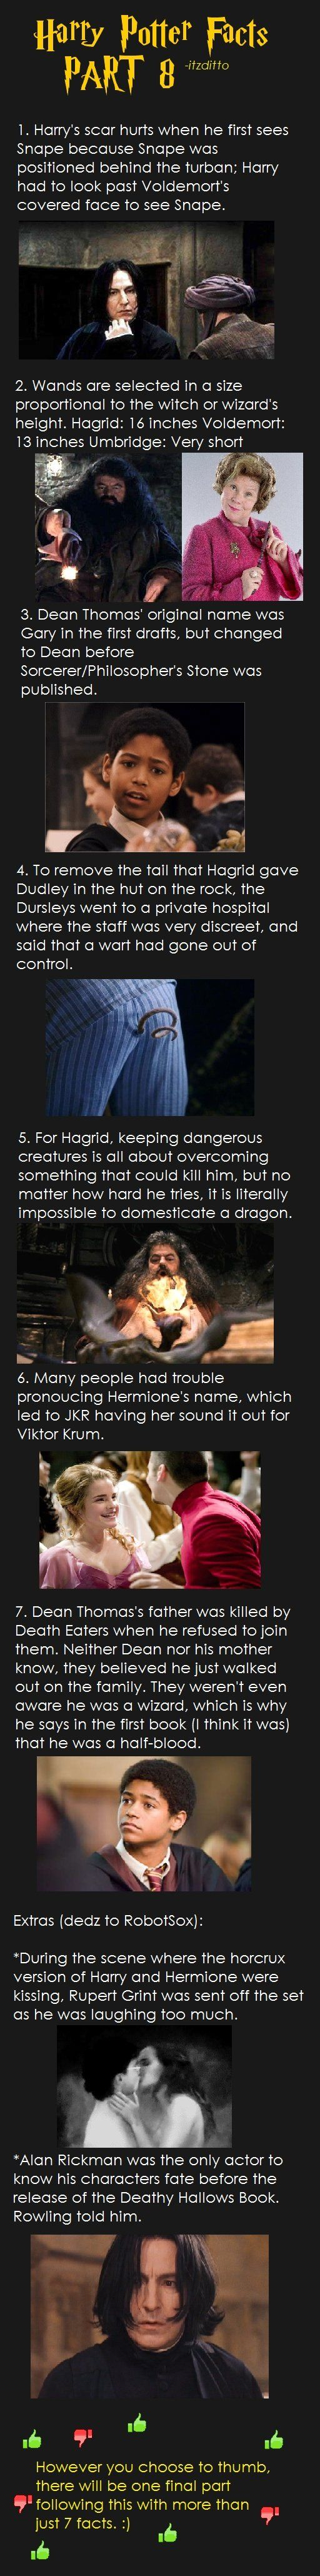 Harry Potter Facts Part 8